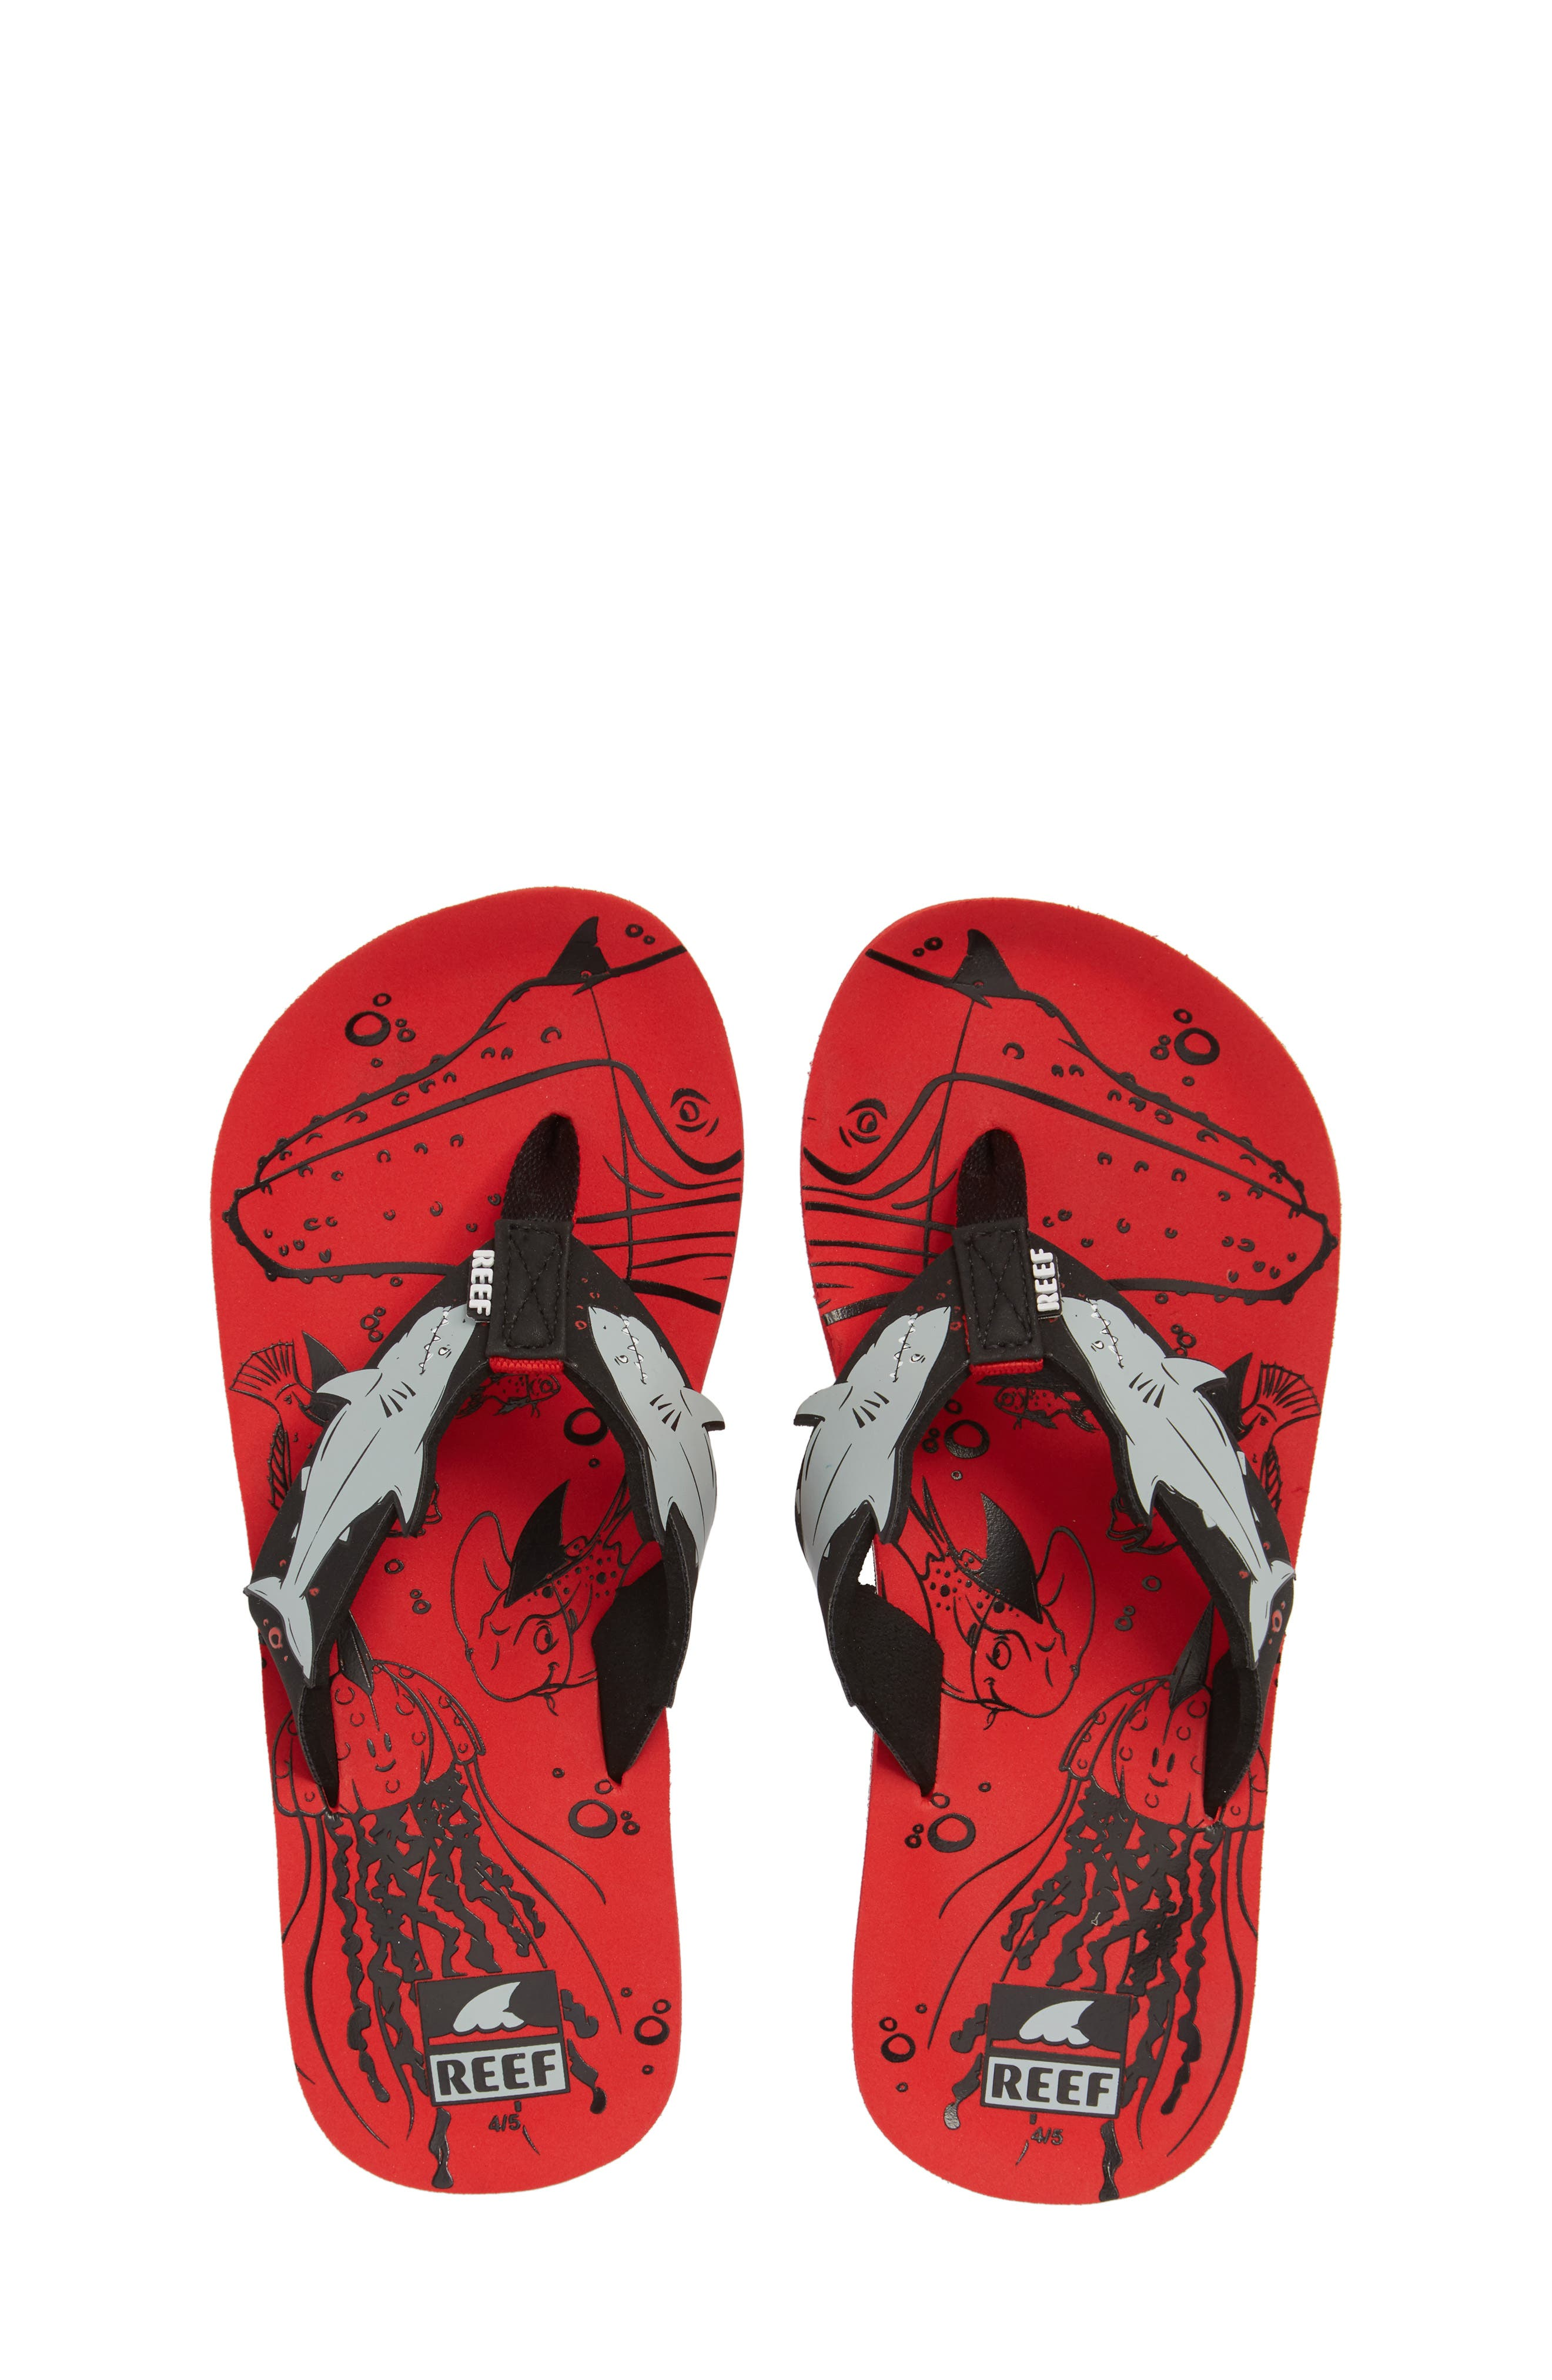 Ahi Shark Flip Flop,                         Main,                         color, RED SHARK